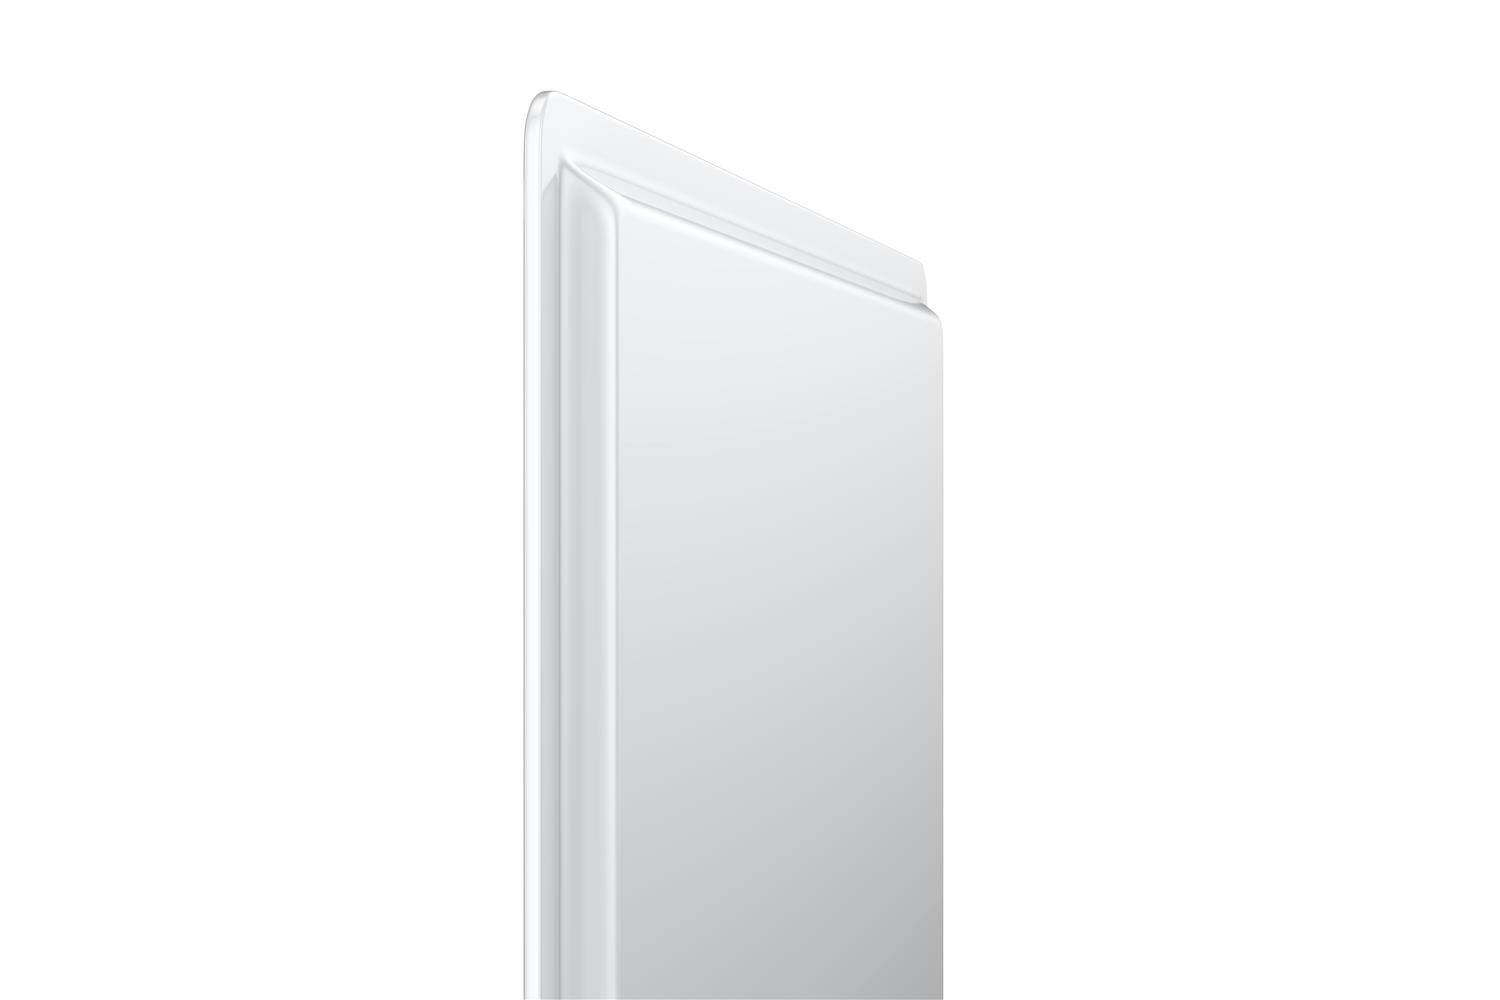 Back-lit panel backlight ultra-thin led flat panel light dimming 5